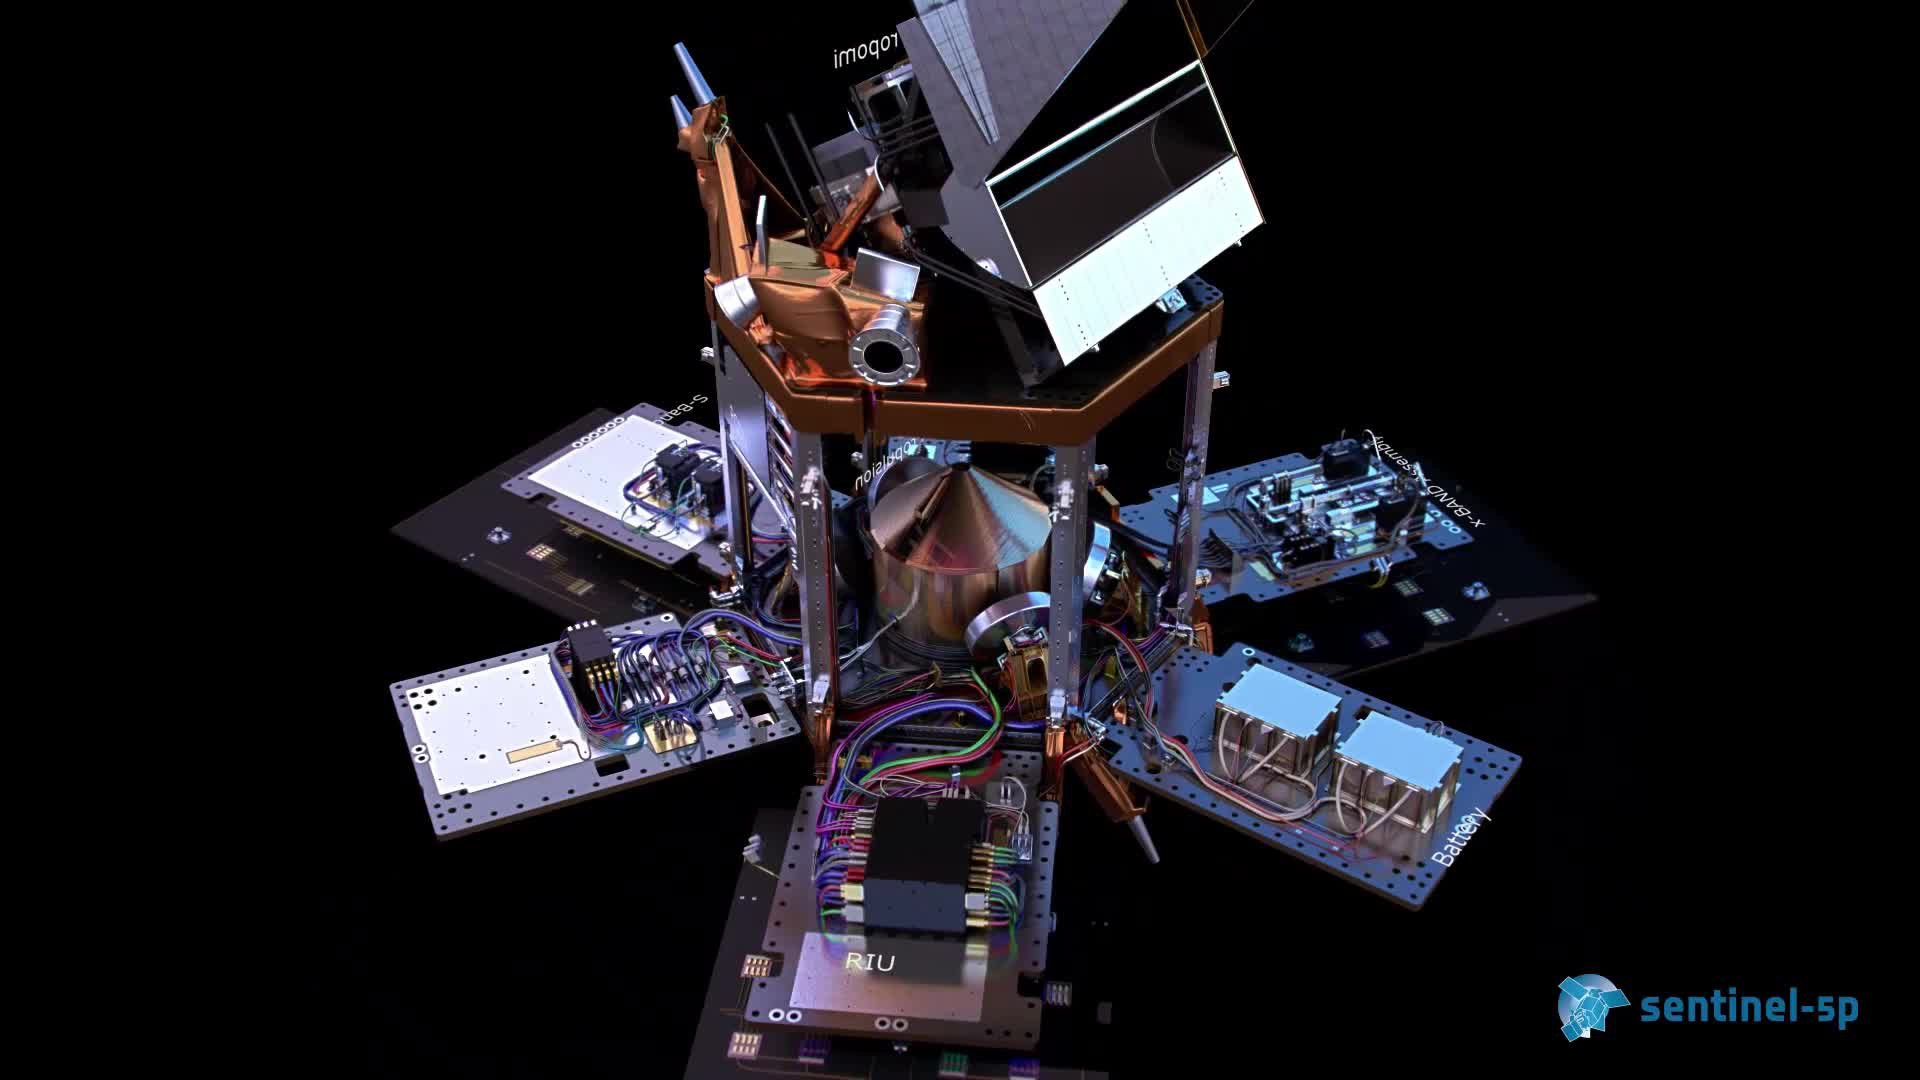 Sentinel-5p - Technical View